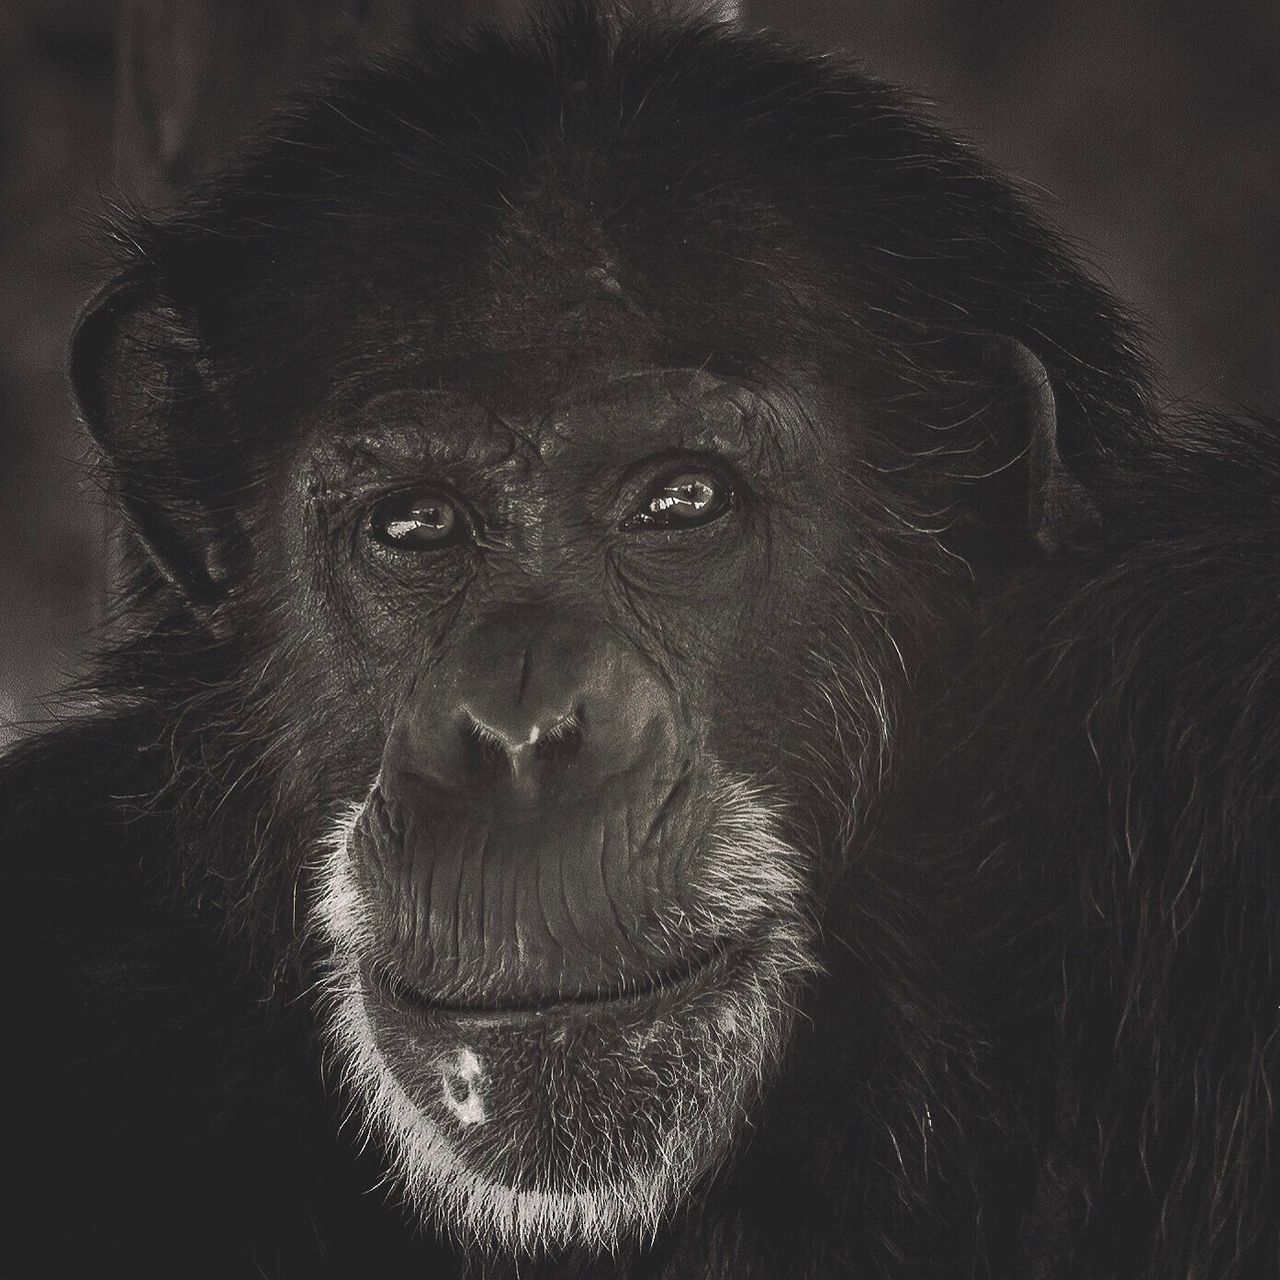 One Animal Animal Themes Portrait Animals In The Wild No People Animal Wildlife Close-up Primate Nature Mammal Chimpanzee Day Outdoors Orangutan